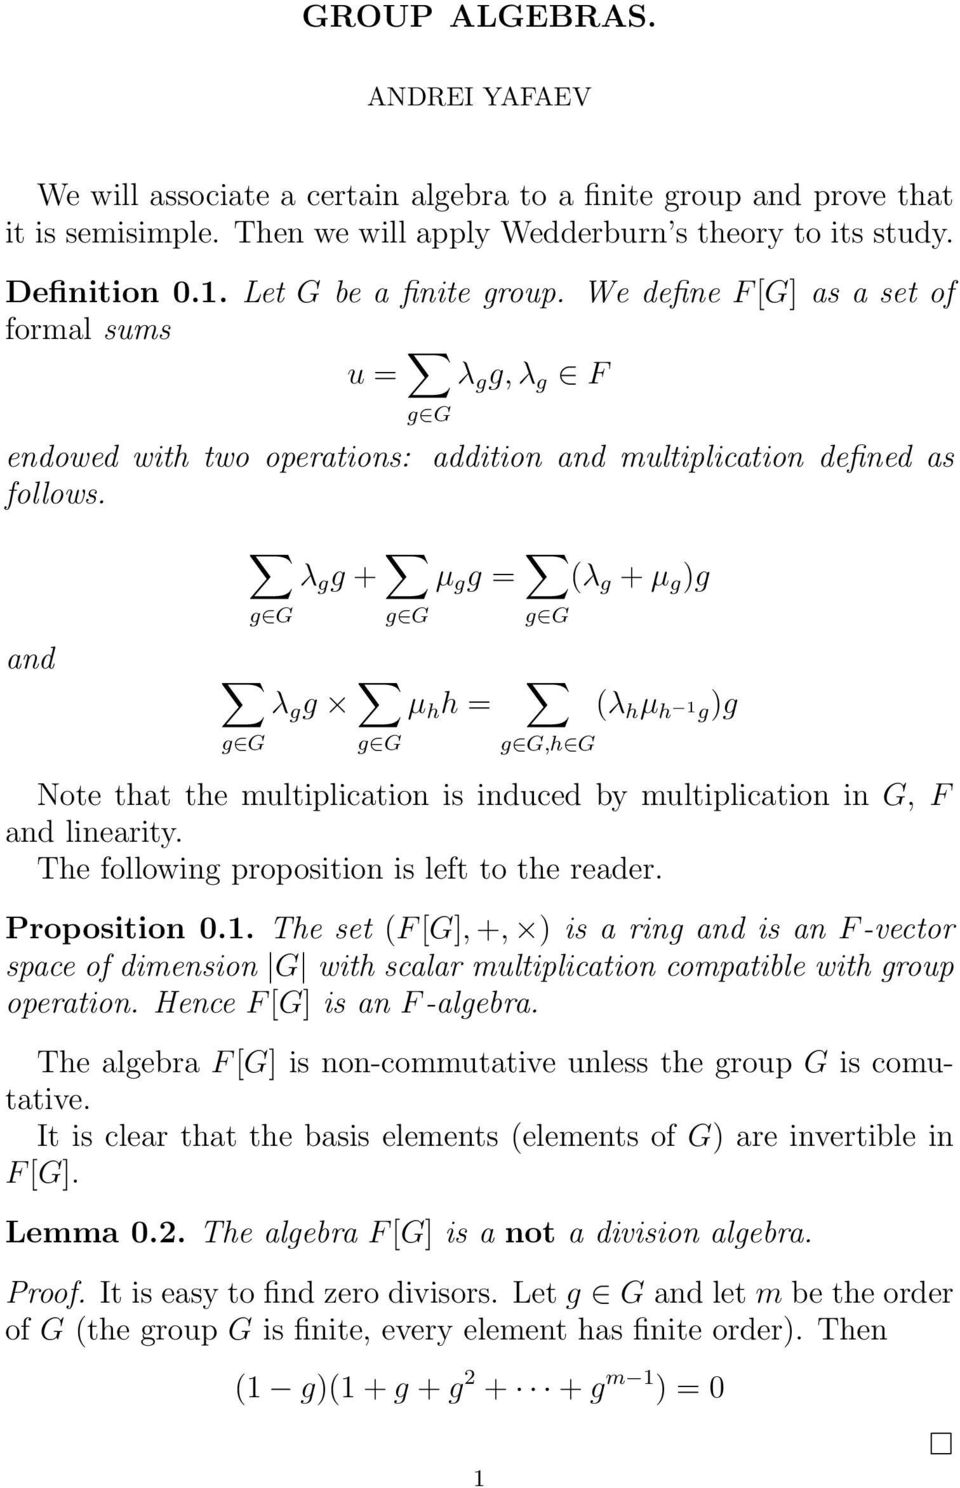 and g G λ g g + g G µ g g = g G g G λ g g g G µ h h = g G,h G (λ g + µ g )g (λ h µ h 1 g)g Note that the multiplication is induced by multiplication in G, F and linearity.